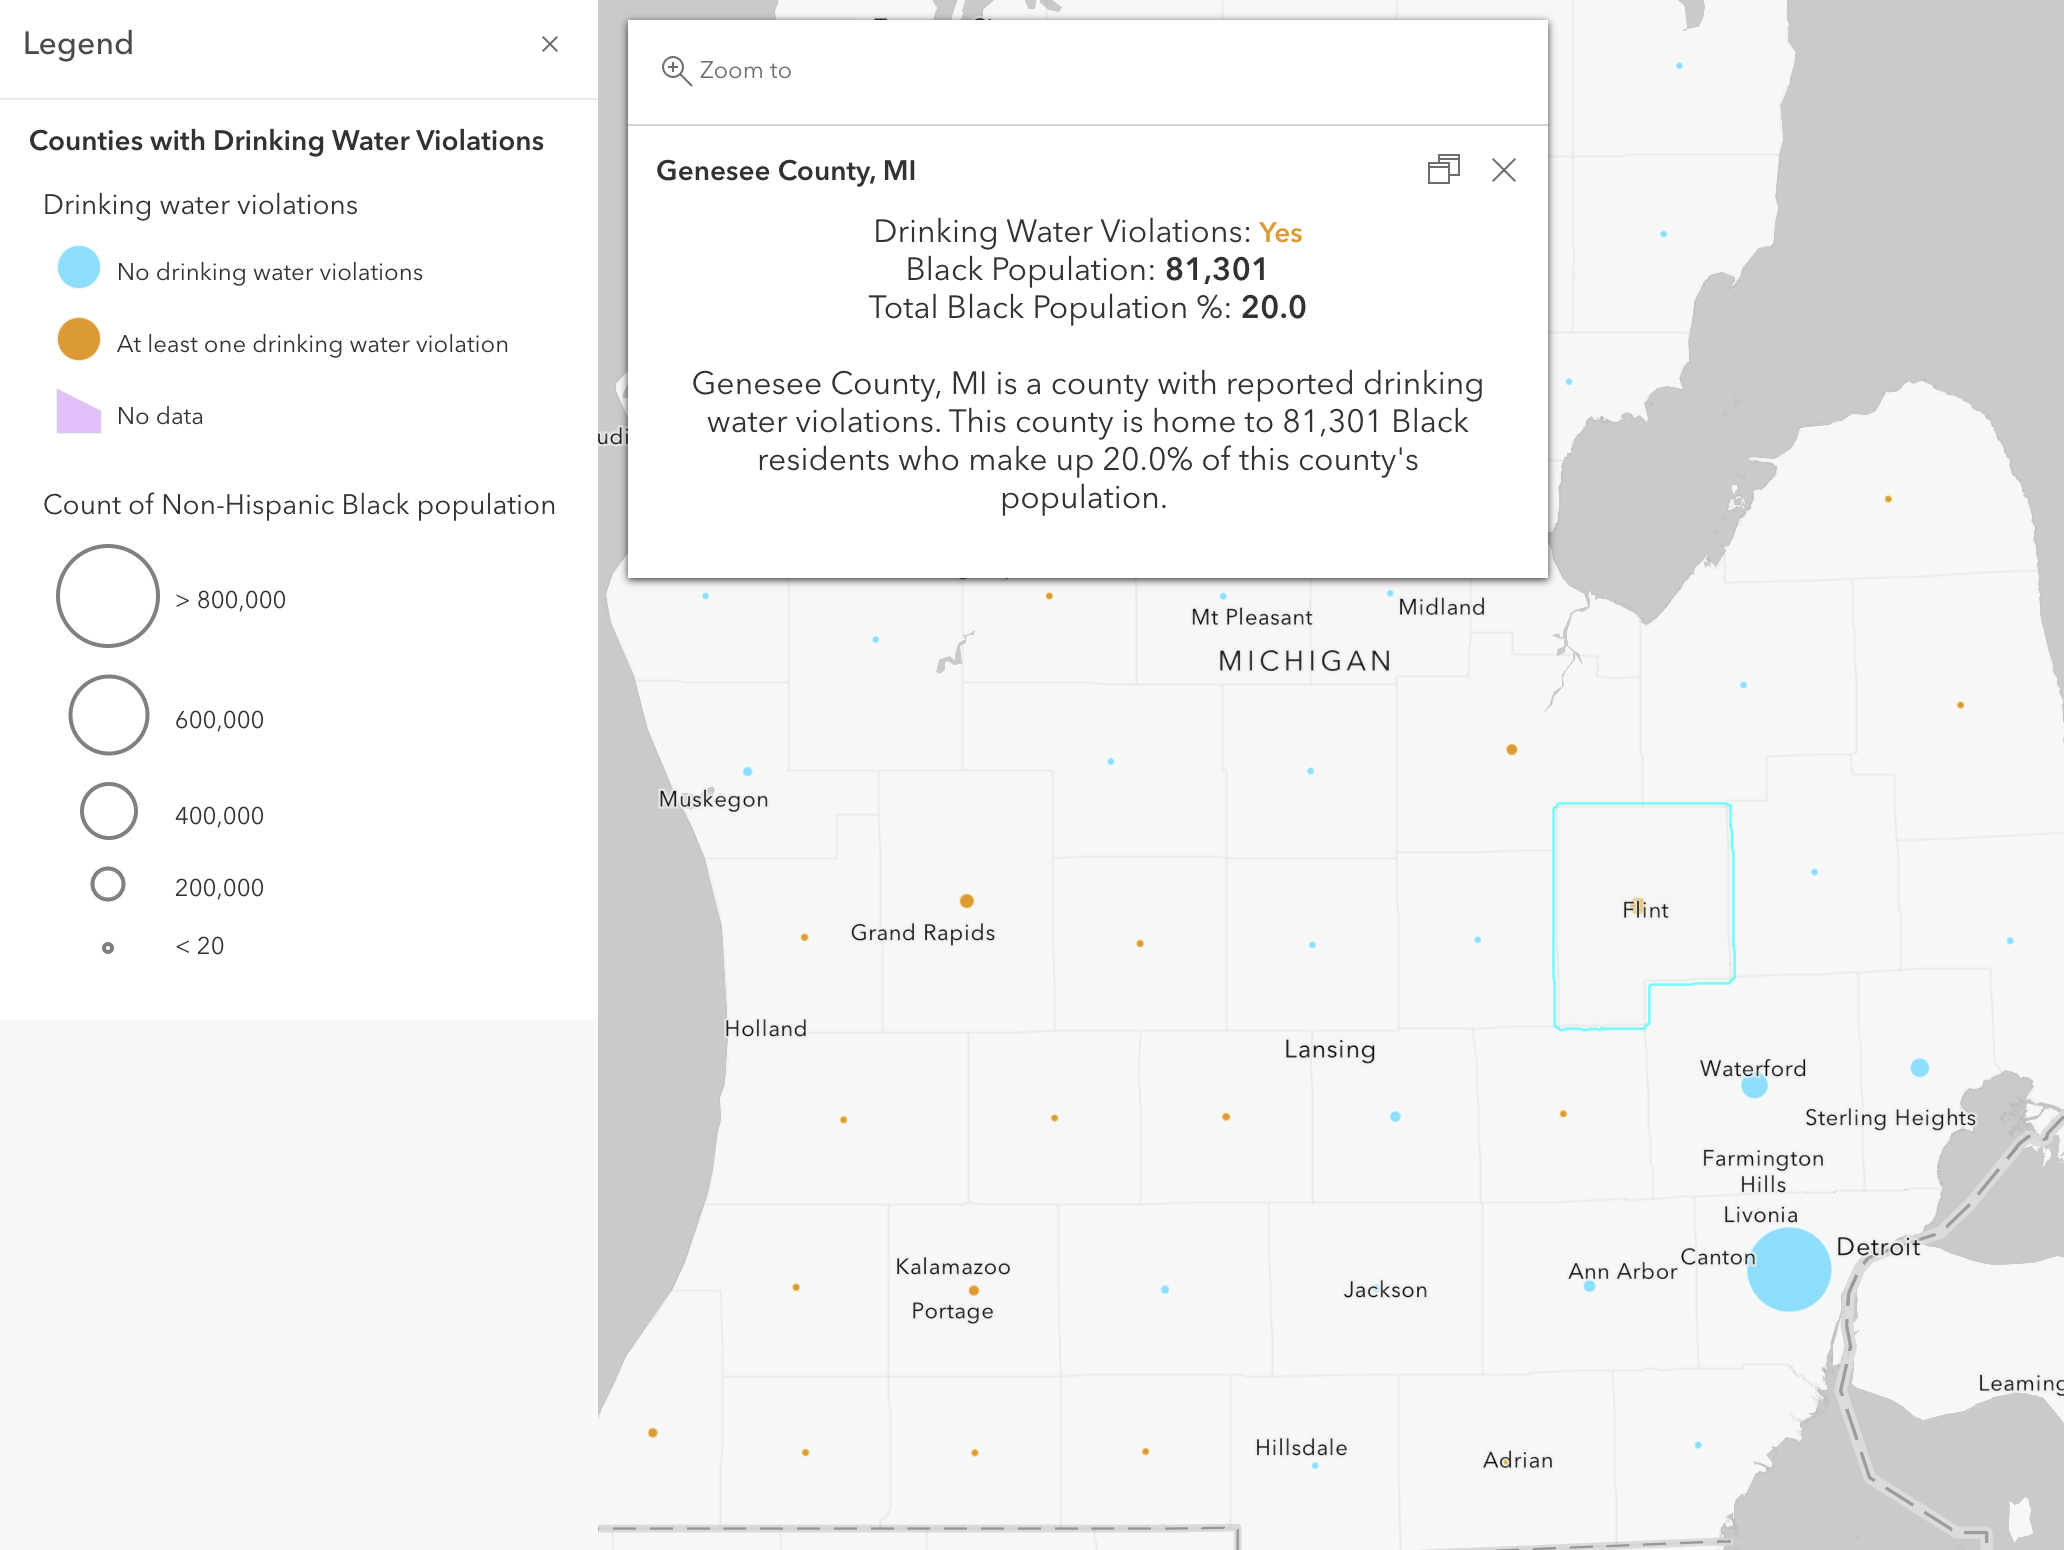 Where are Black populations impacted by drinking water violations?